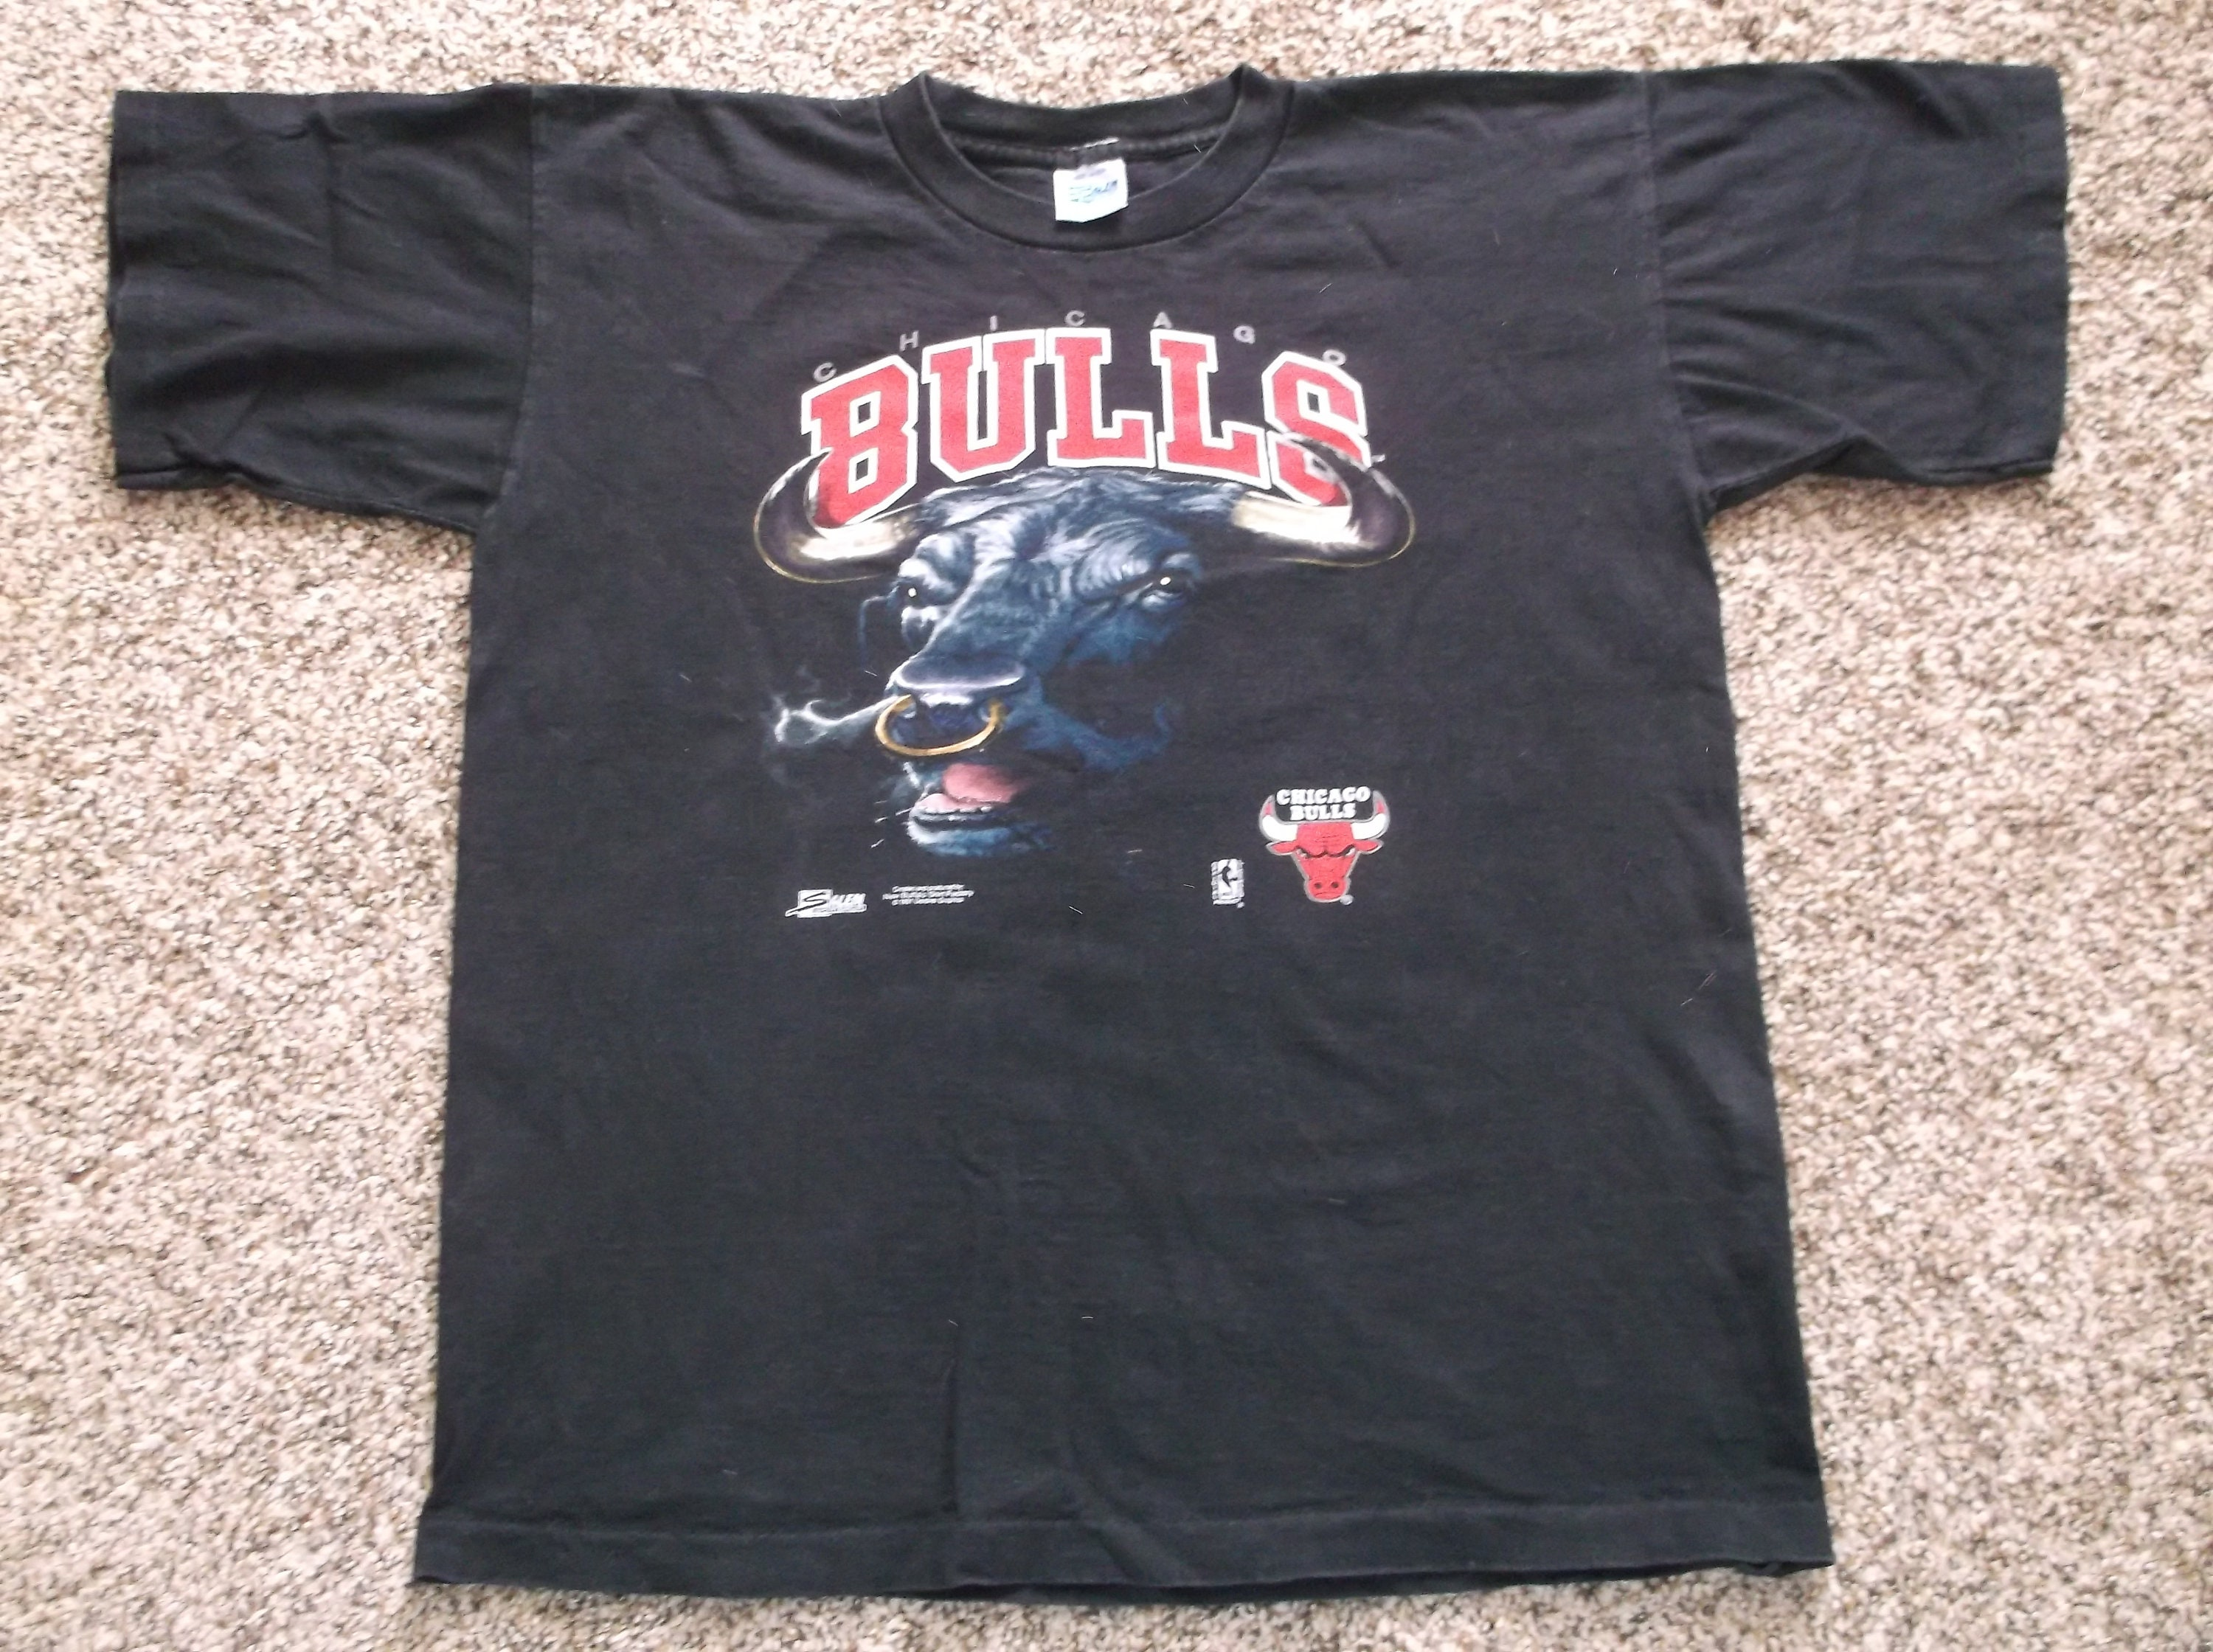 0f2eed5ca ... vintage nba 1991 chicago bulls t shirt size small 18 20 etsy ...